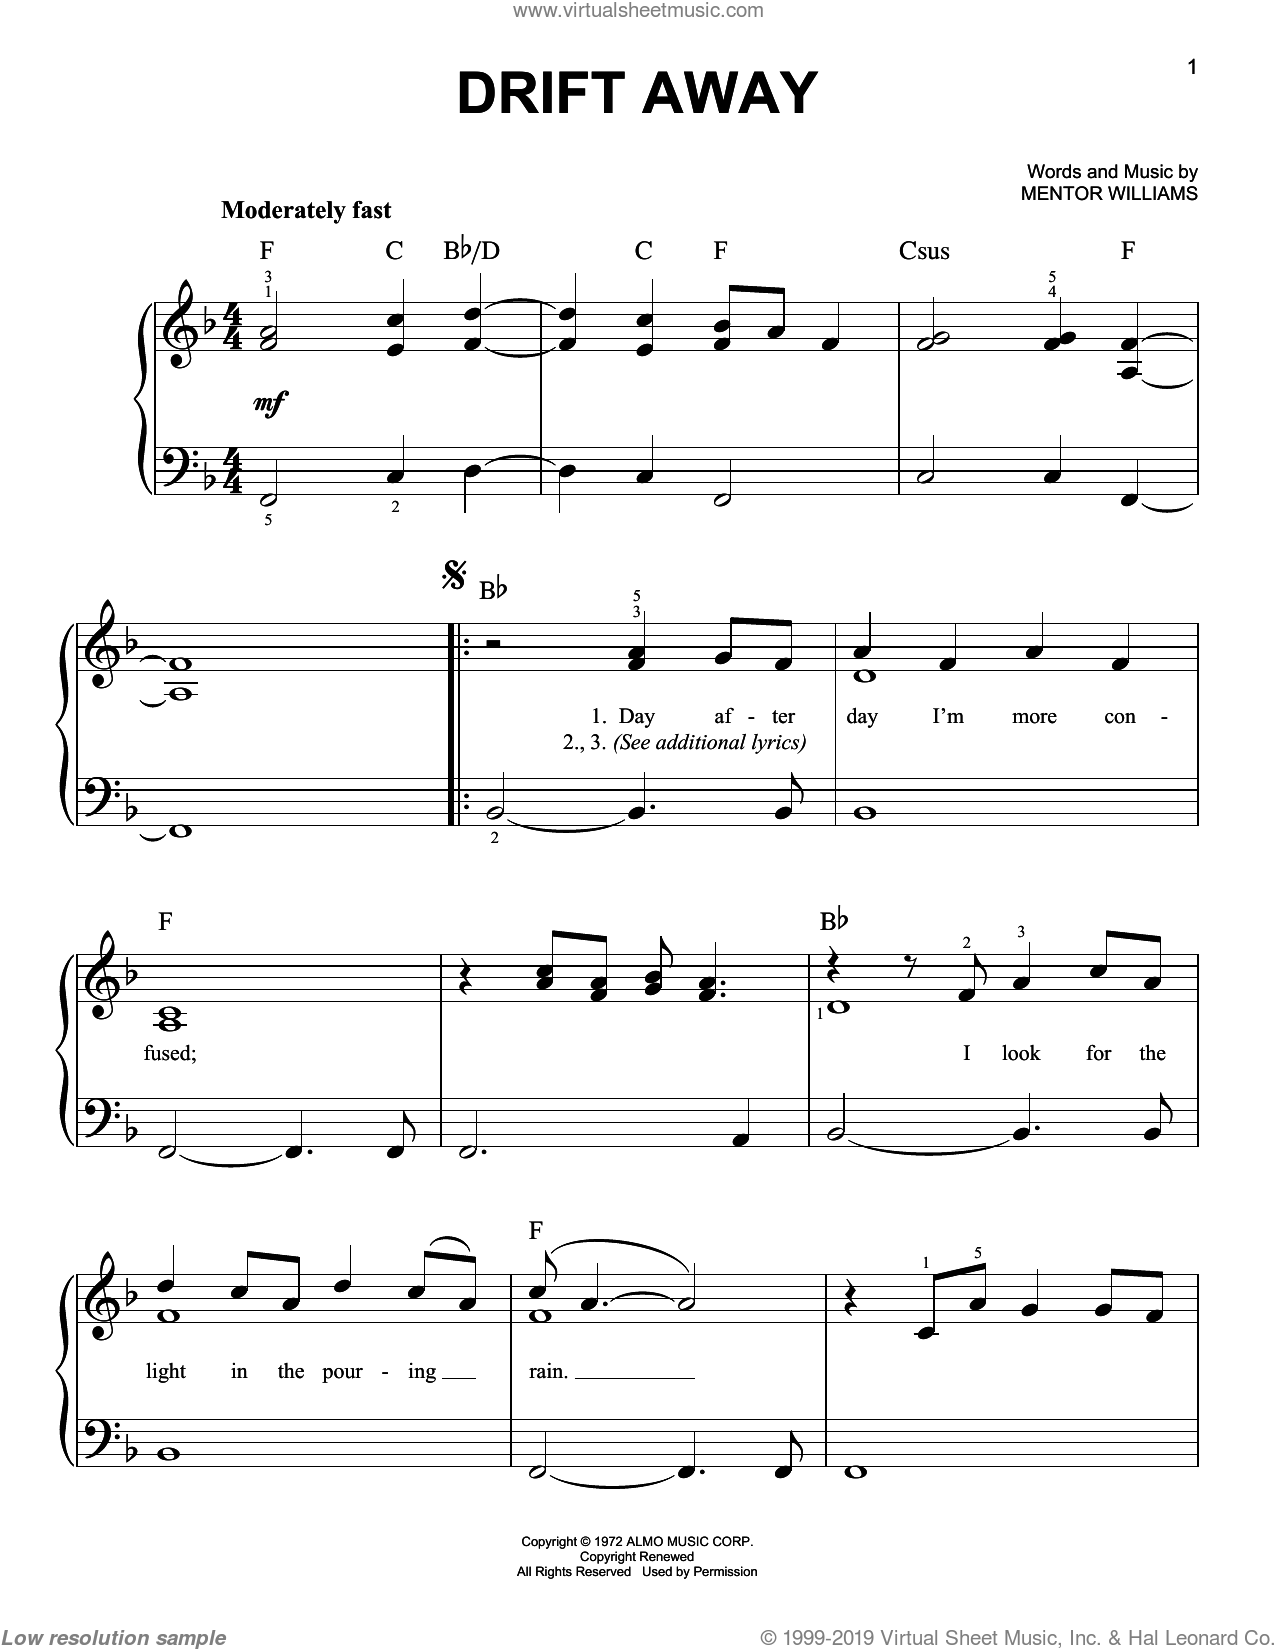 Drift Away sheet music for piano solo by Uncle Kracker, Dobie Gray and Mentor Williams, easy skill level